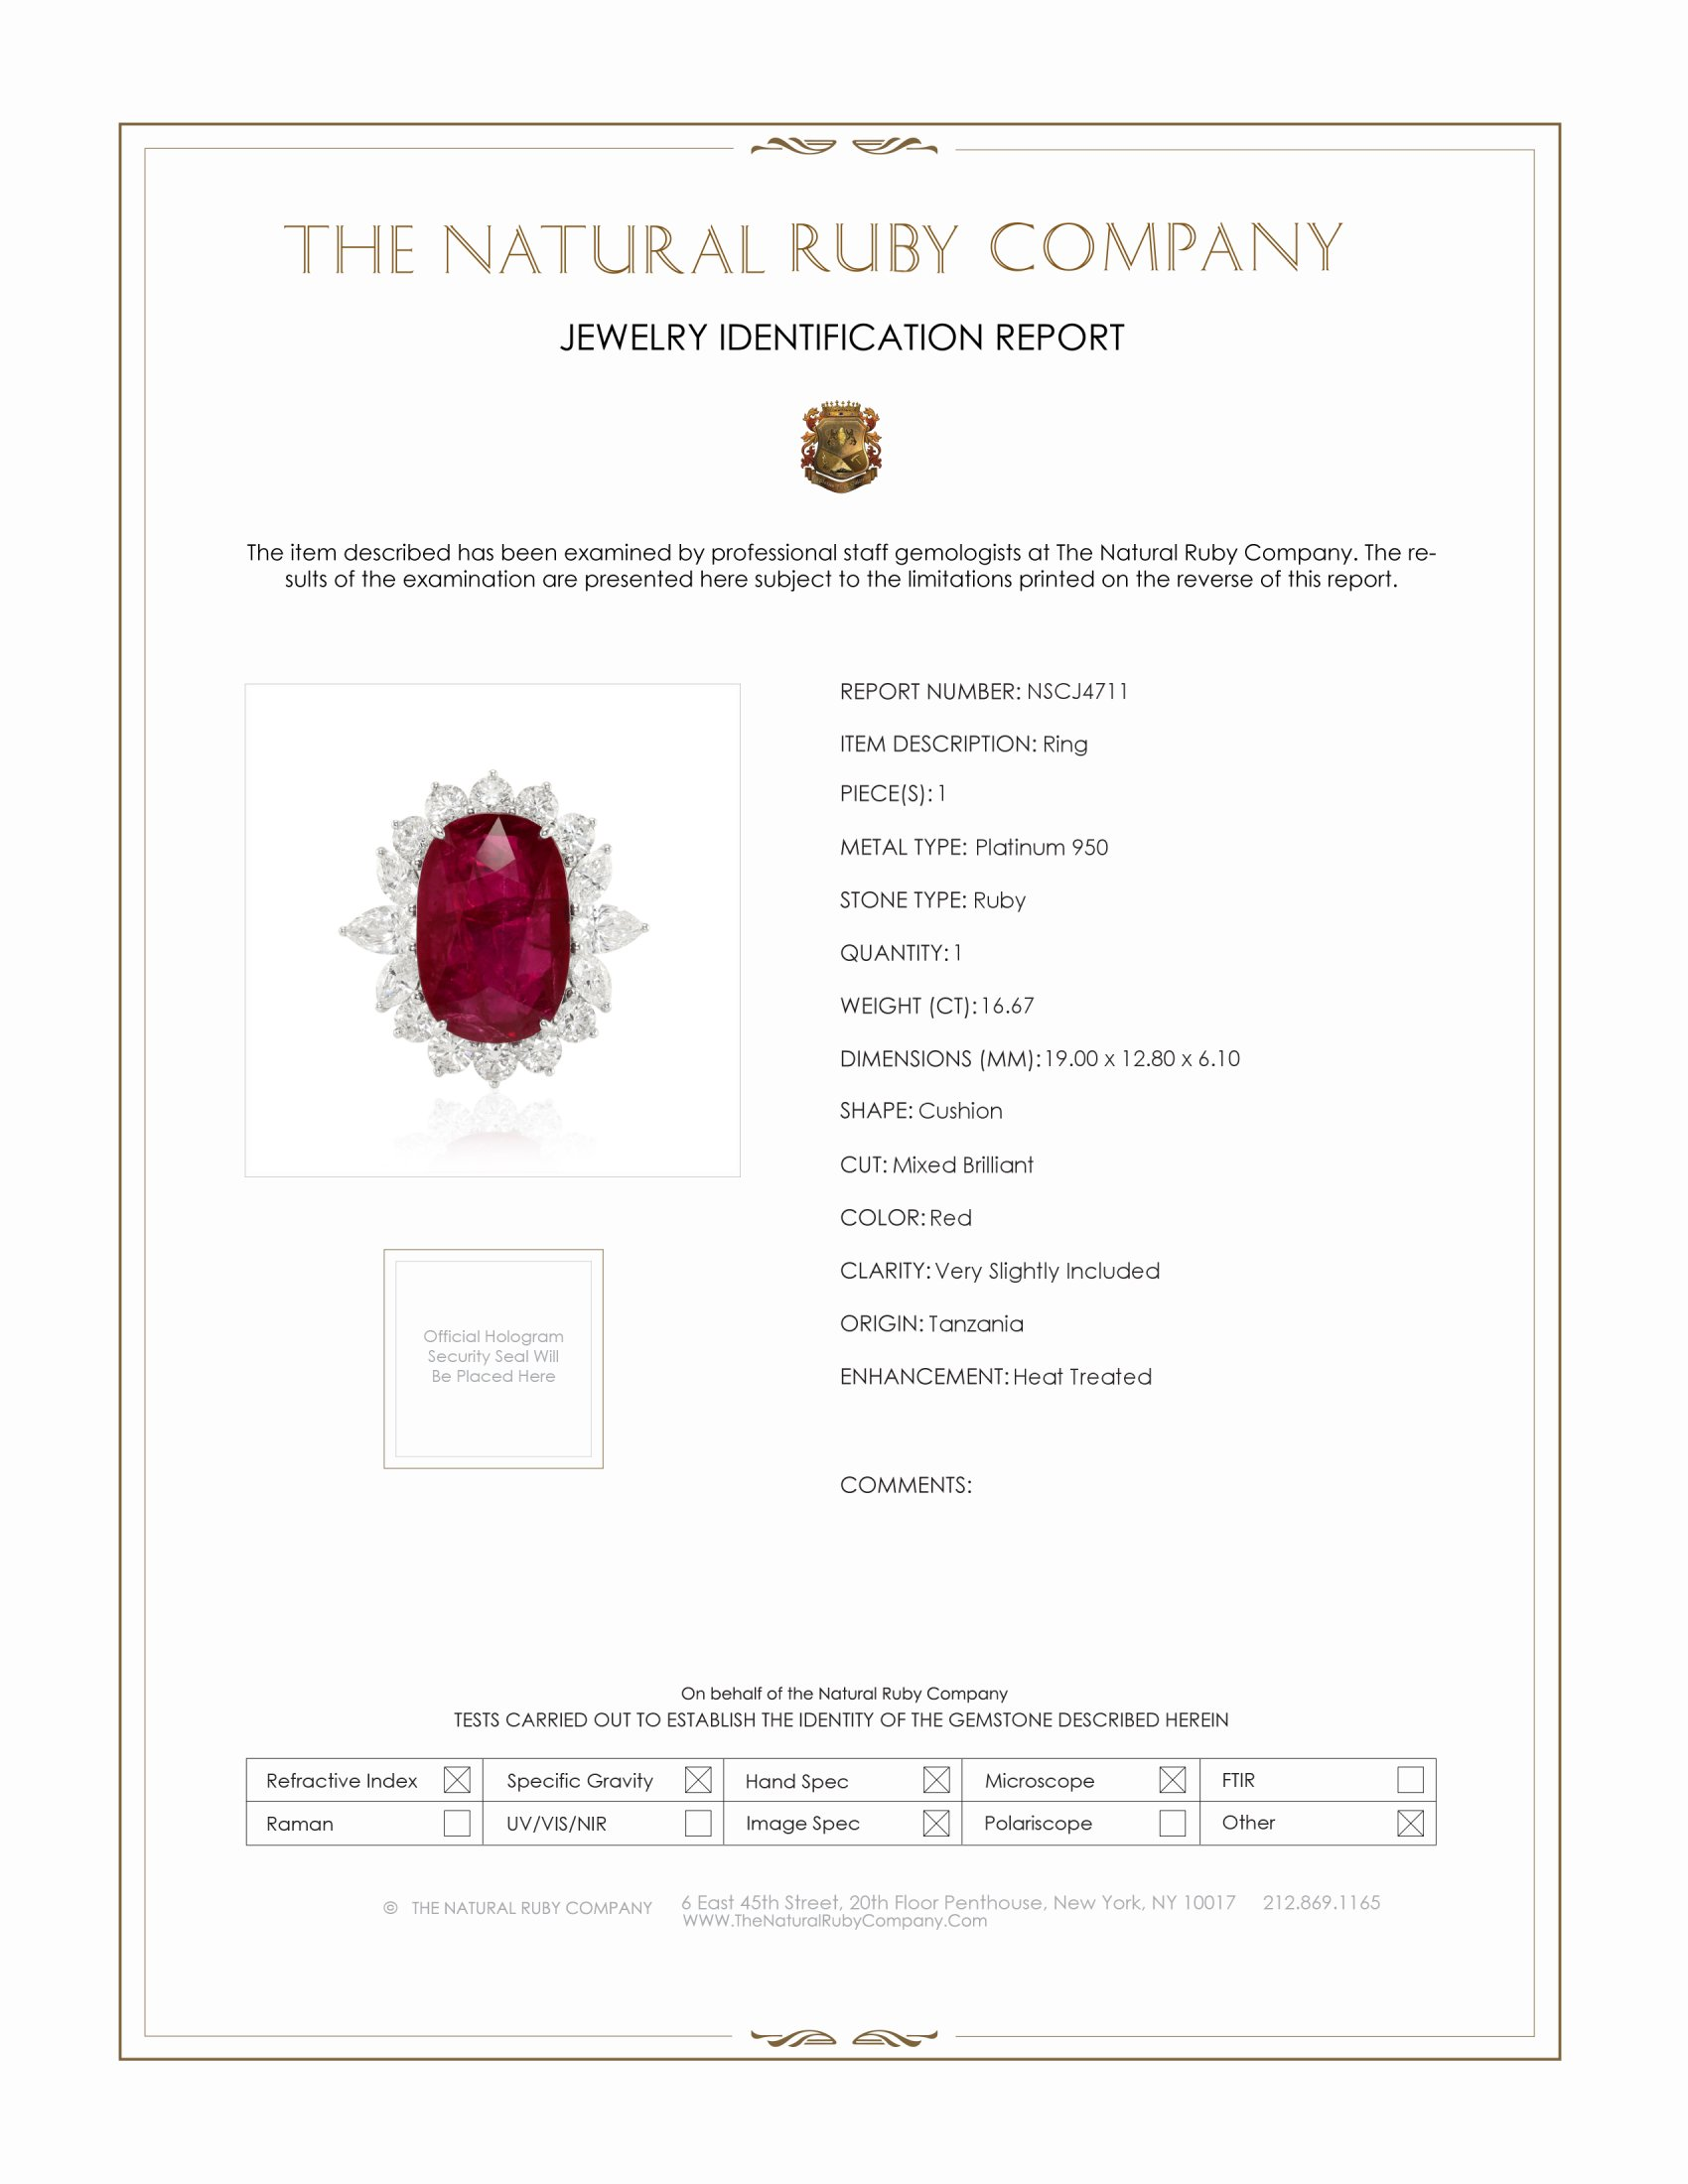 16.67ct Ruby Ring Certification